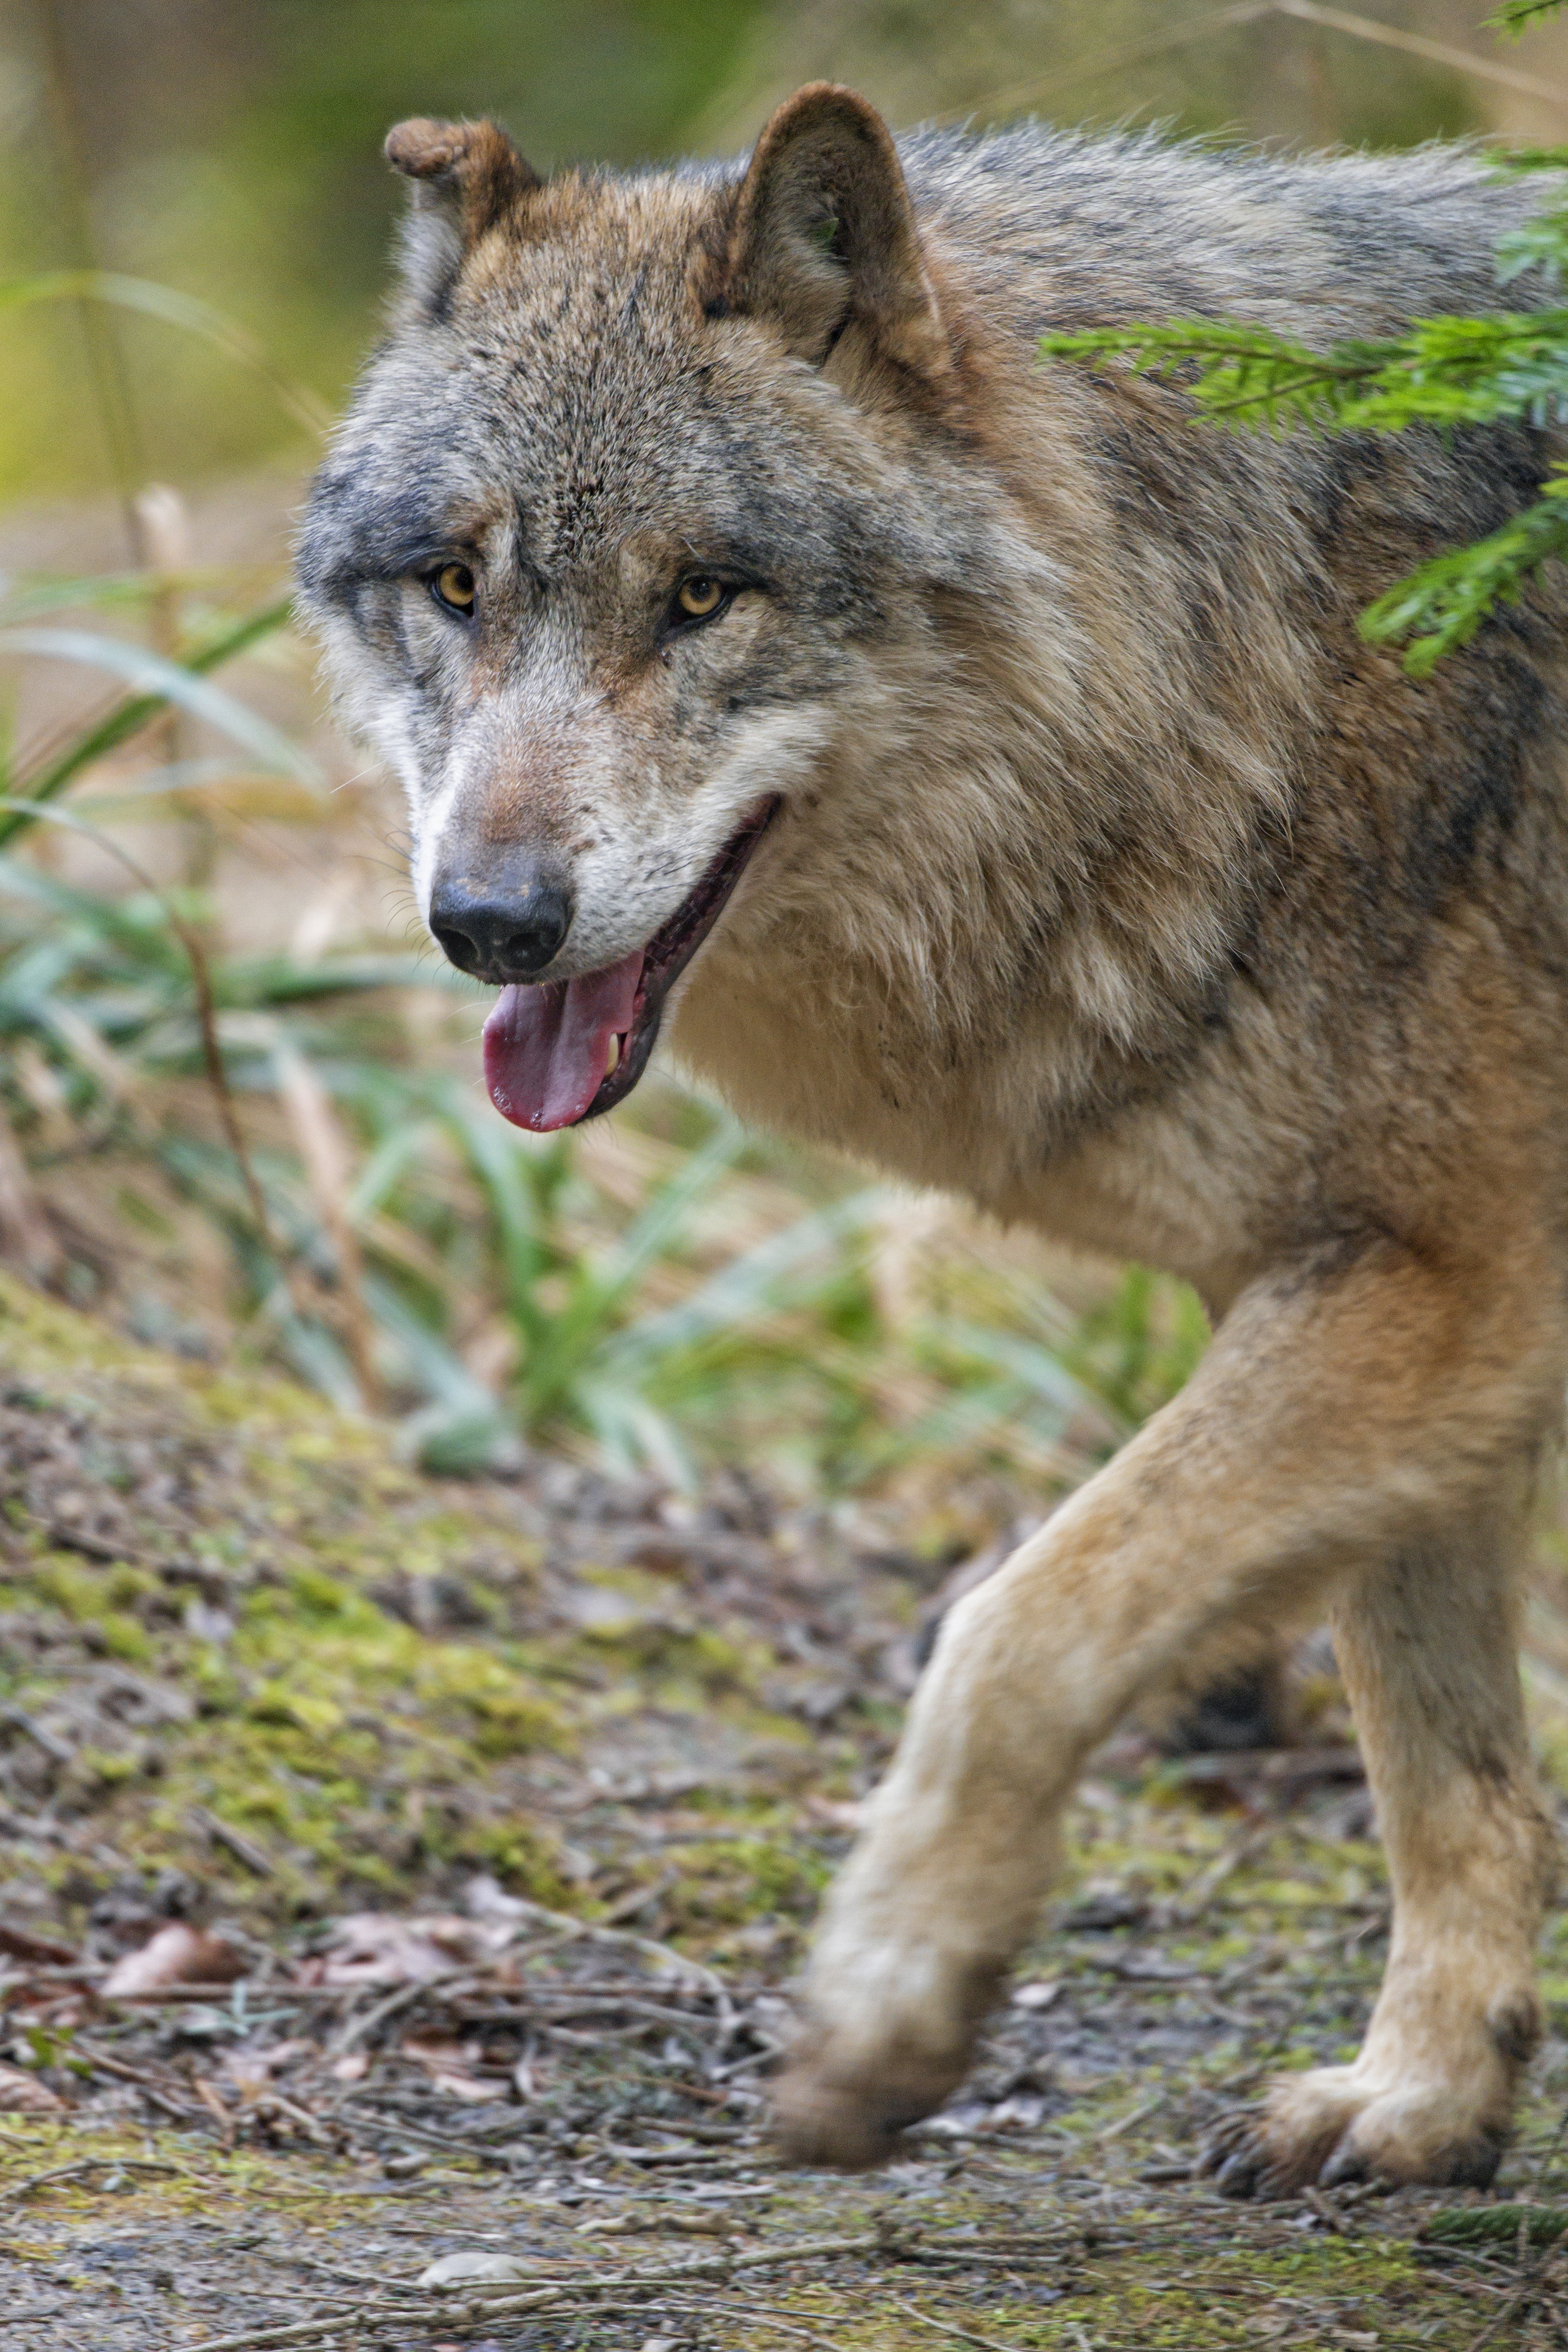 152129 download wallpaper Animals, Wolf, Predator, Sight, Opinion, Animal, Muzzle screensavers and pictures for free